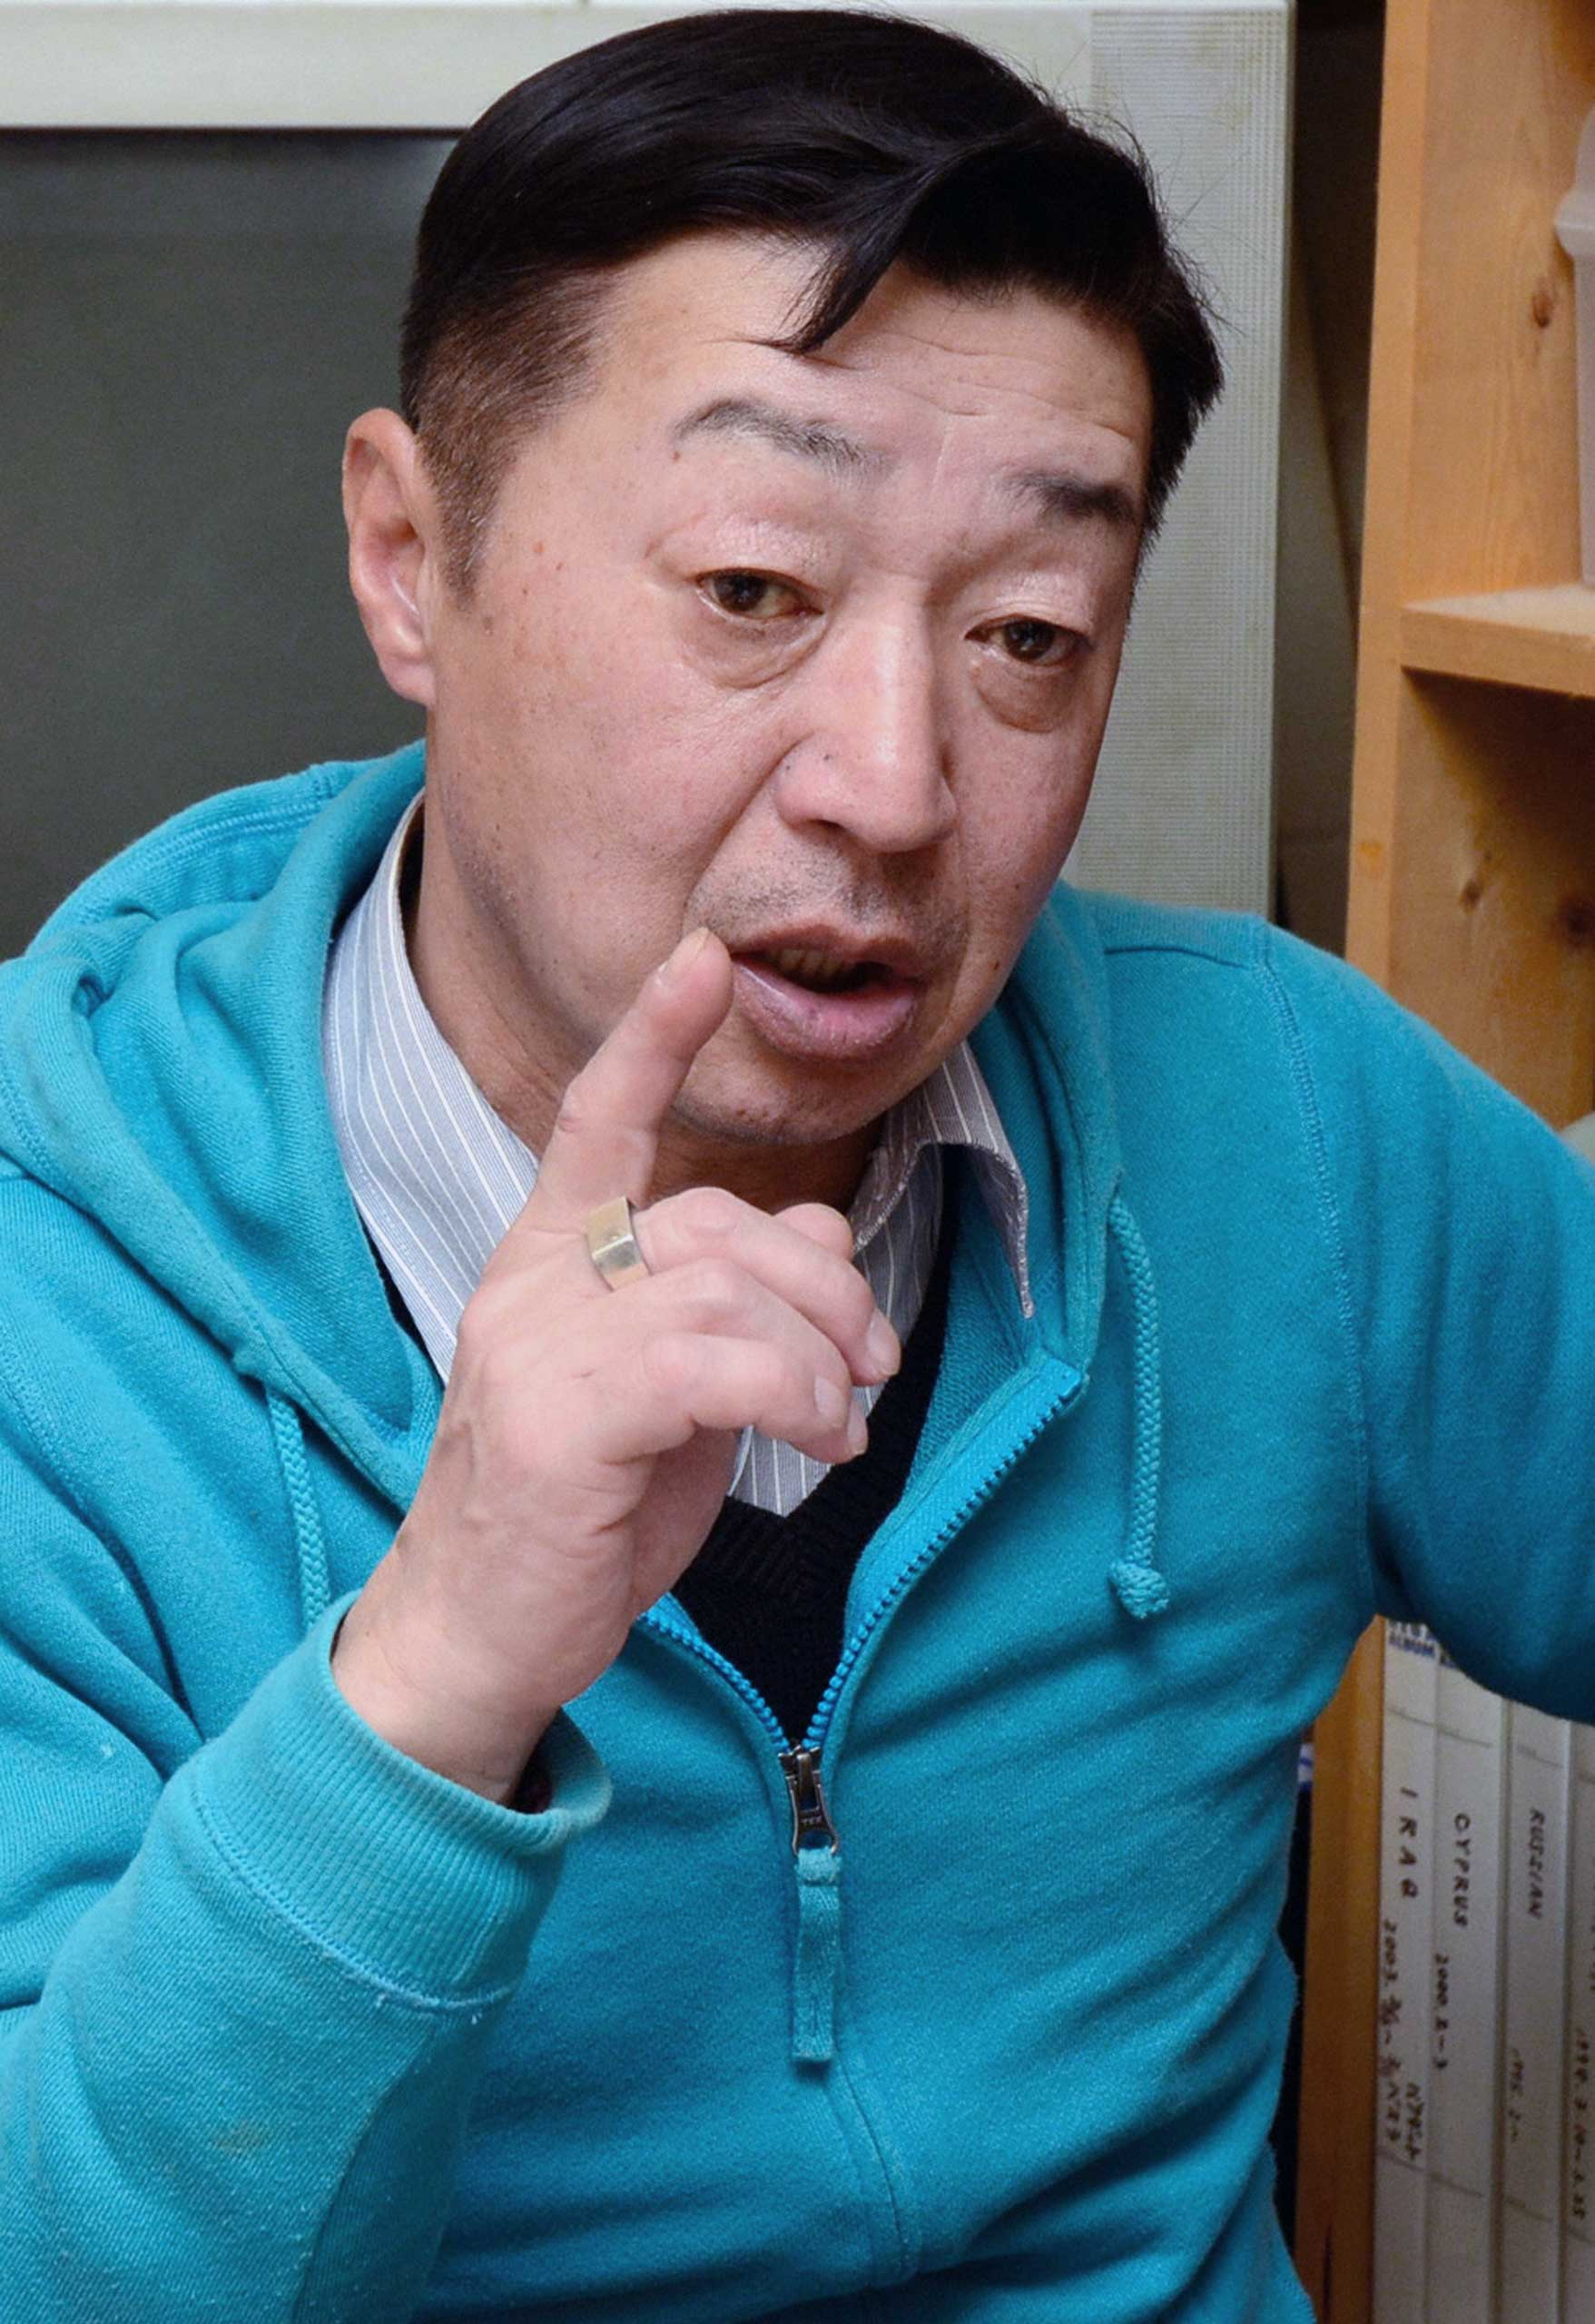 Freelance photographer Yuichi Sugimoto speaks to media reporters a day after his passport was confiscated by the Foreign Ministry at his home on Feb. 8, 2015 in Niigata, Japan.